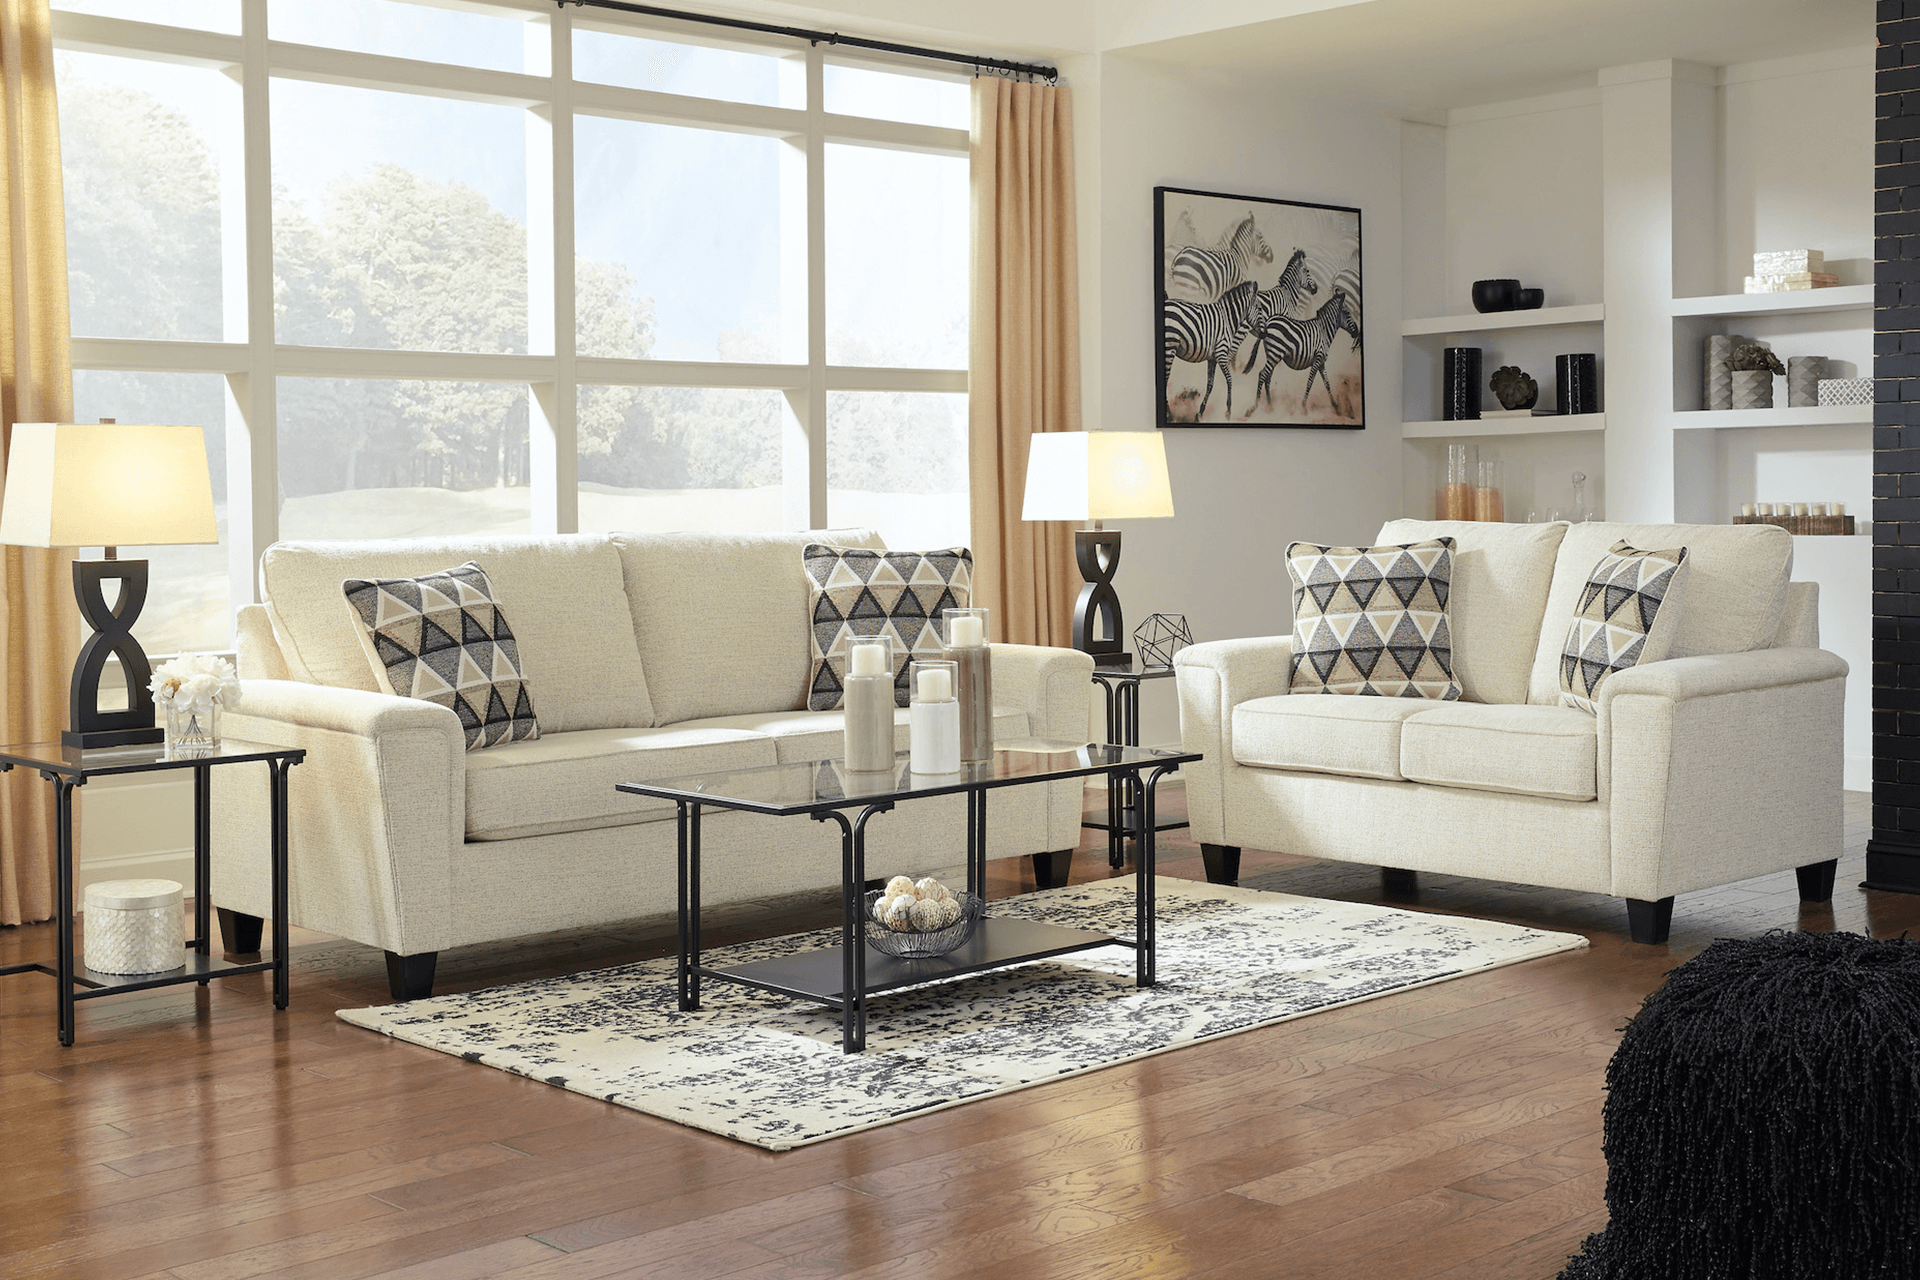 Atlantic_Furniture-Sofa_Sets-83904_T279_hi-res